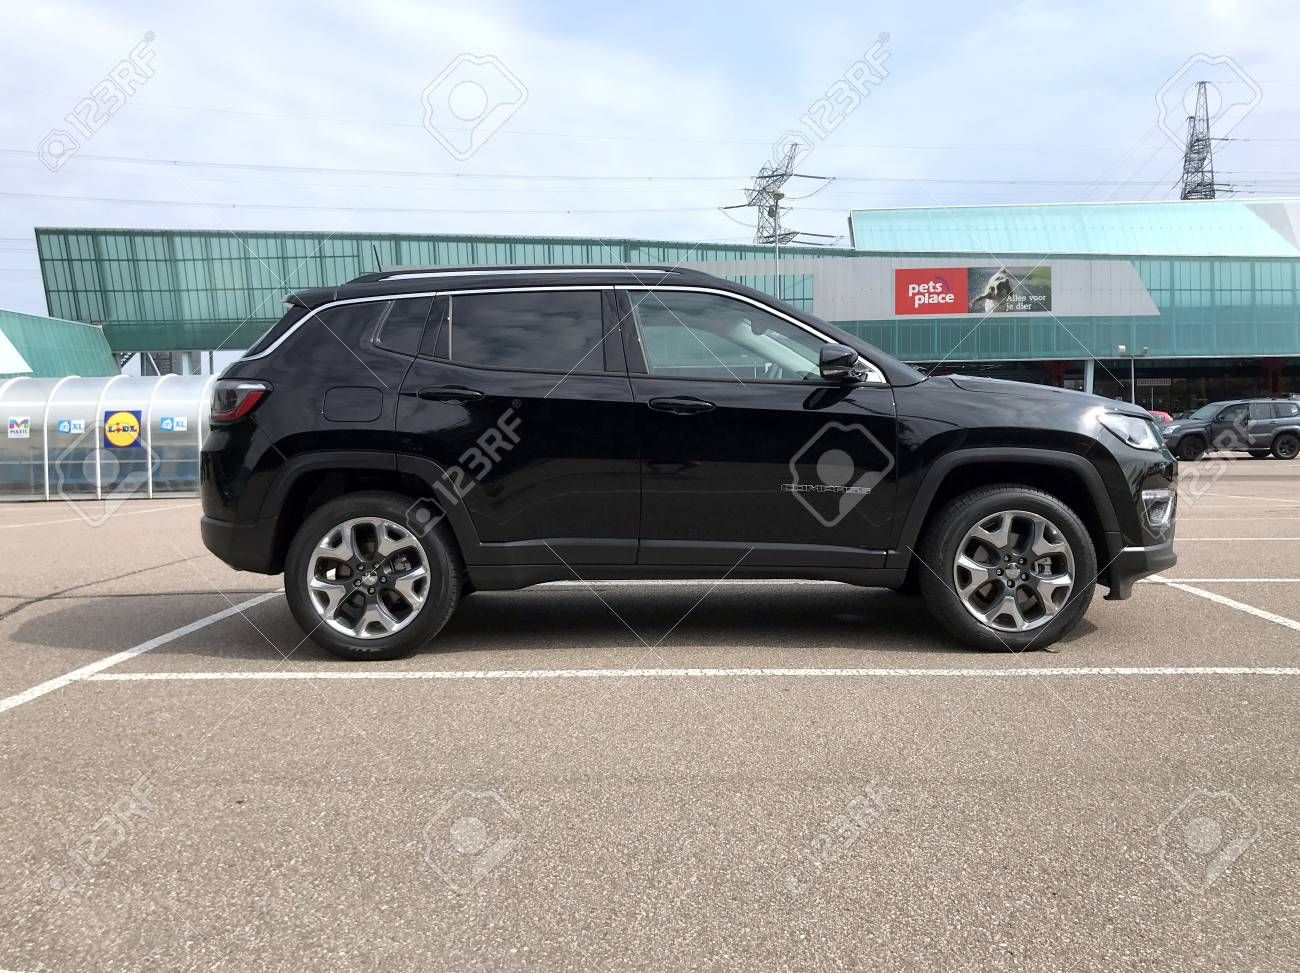 Diemen Netherlands June 9 2018 Black Jeep Compass Parked On A Public Parking Lot Nobody In The Vehicle Sponsore Black Jeep Jeep Compass Army Wallpaper